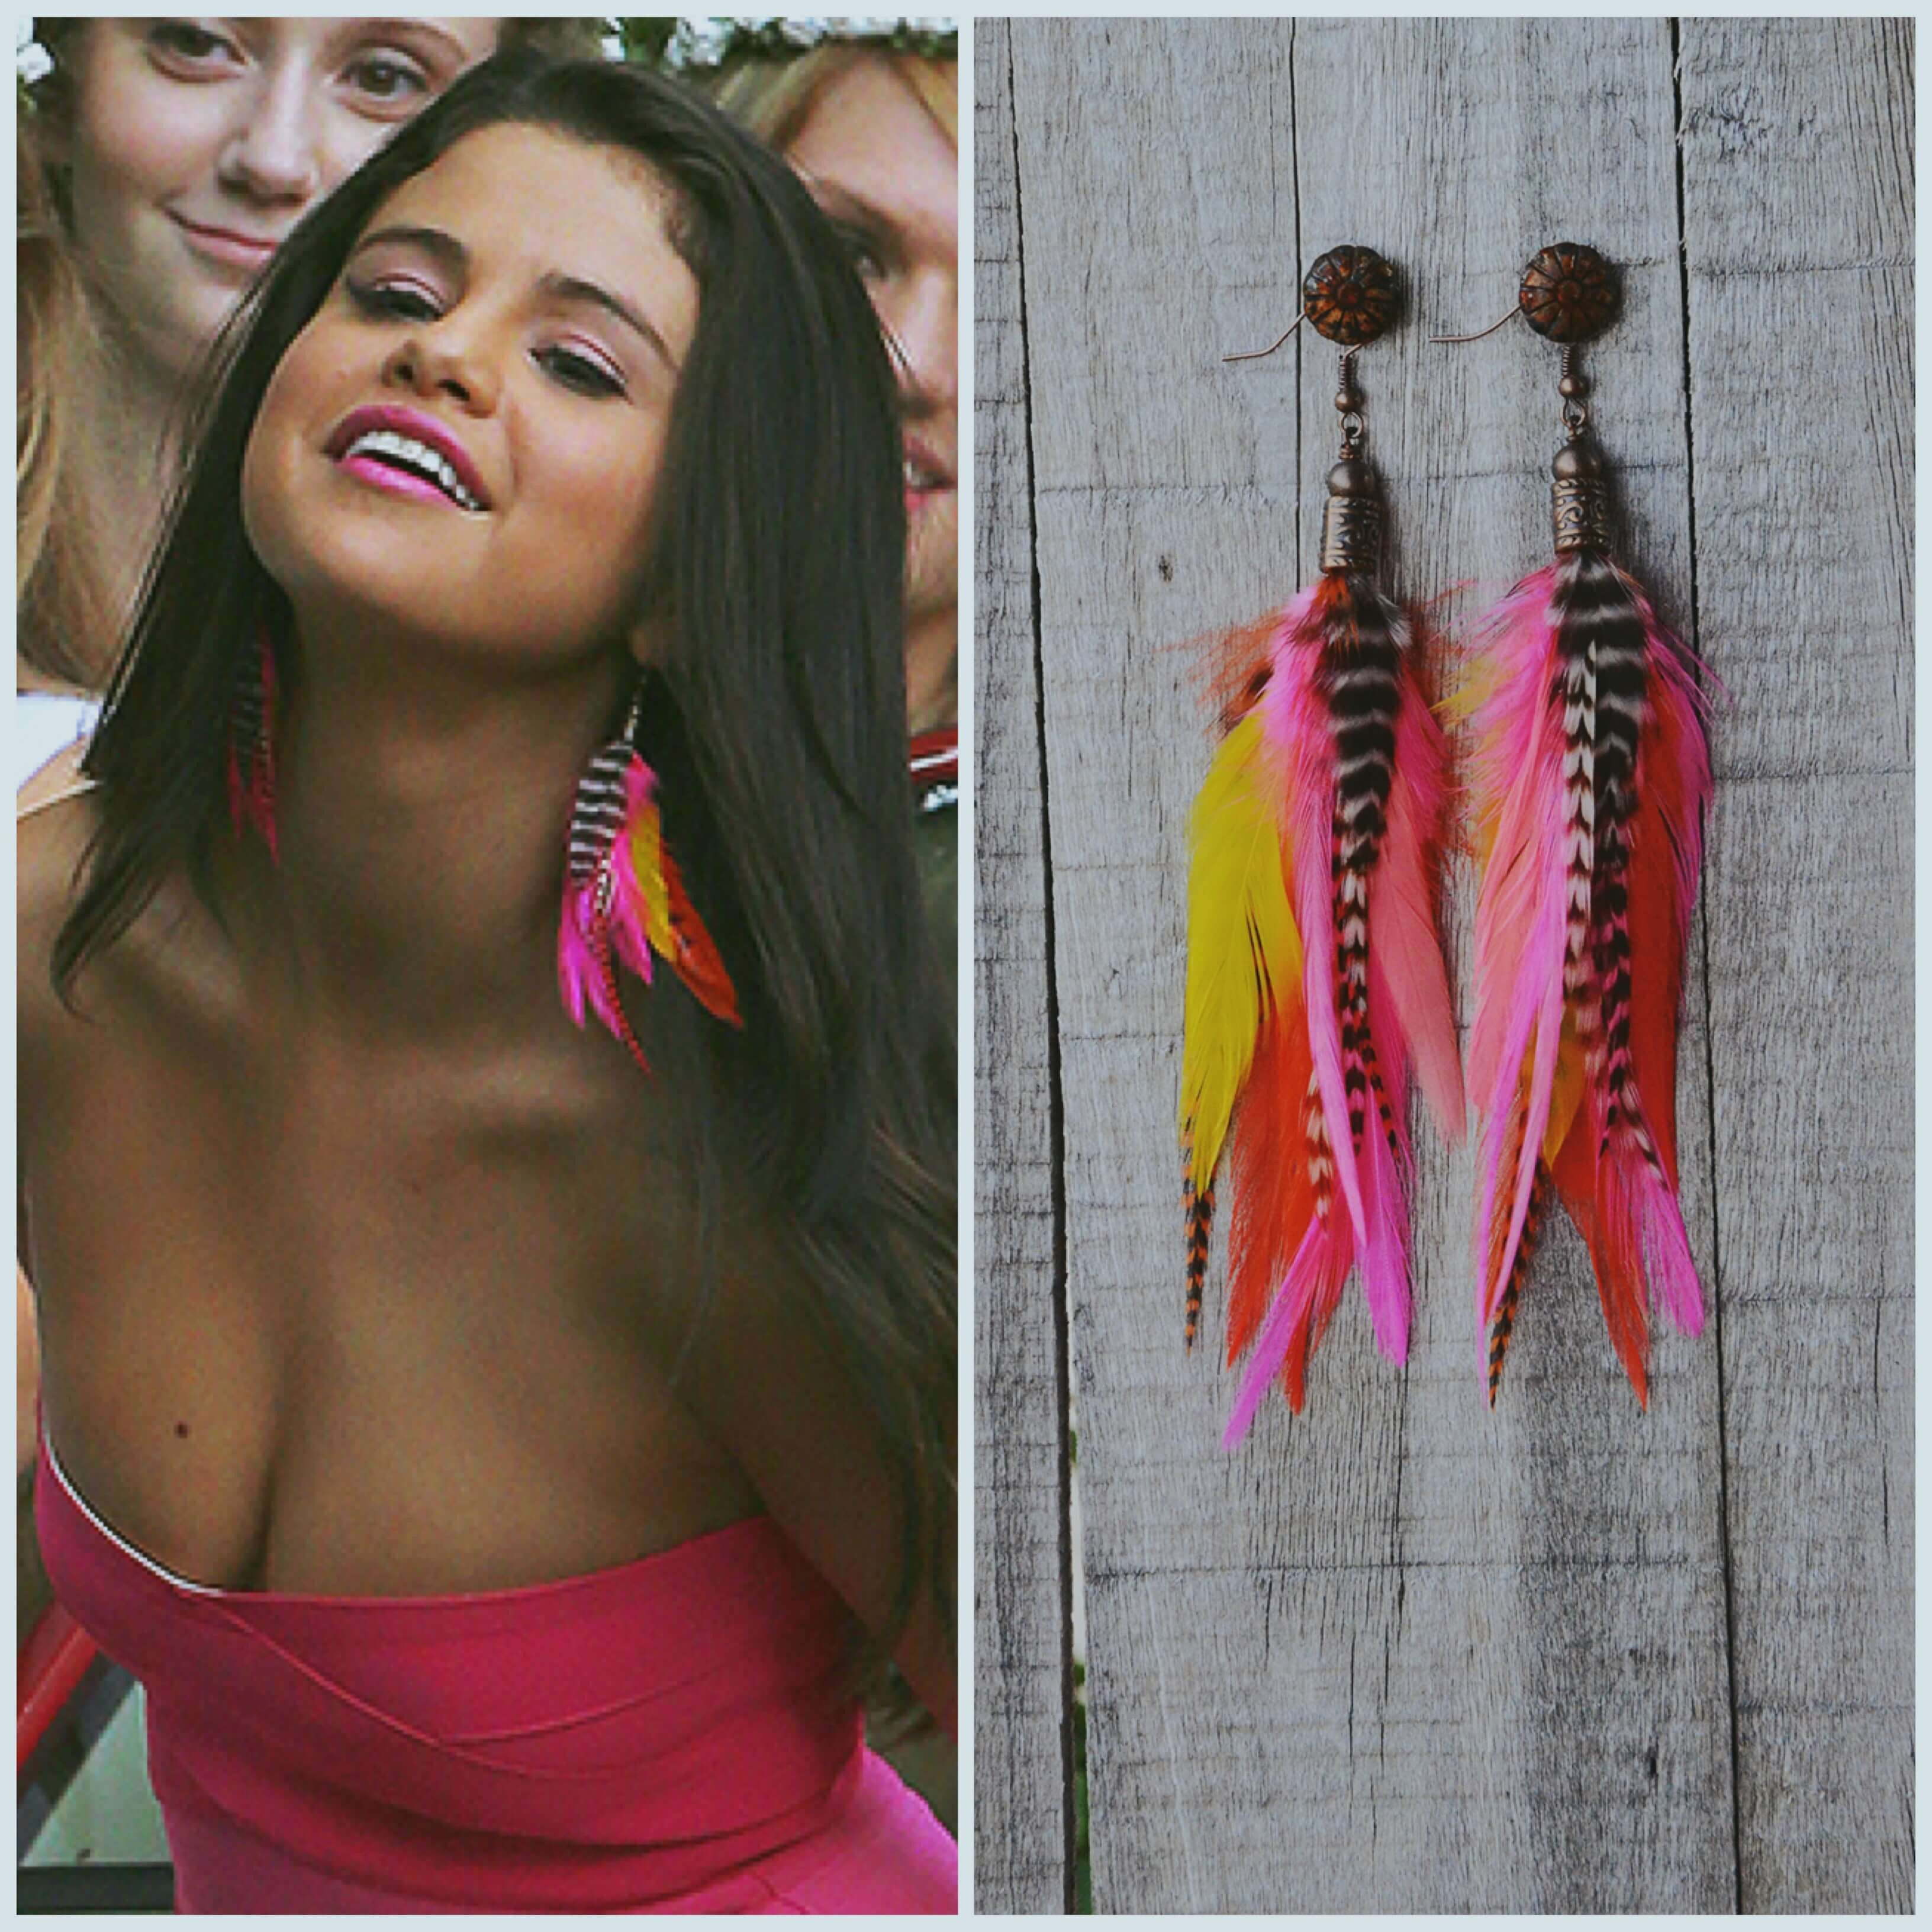 As seen in Neighbors 2. - Real rooster feathers - Lead + nickel free - Bronze beads Cherry Sunset Feather Earrings include red, pink, yellow, orange and natural colored feathers.